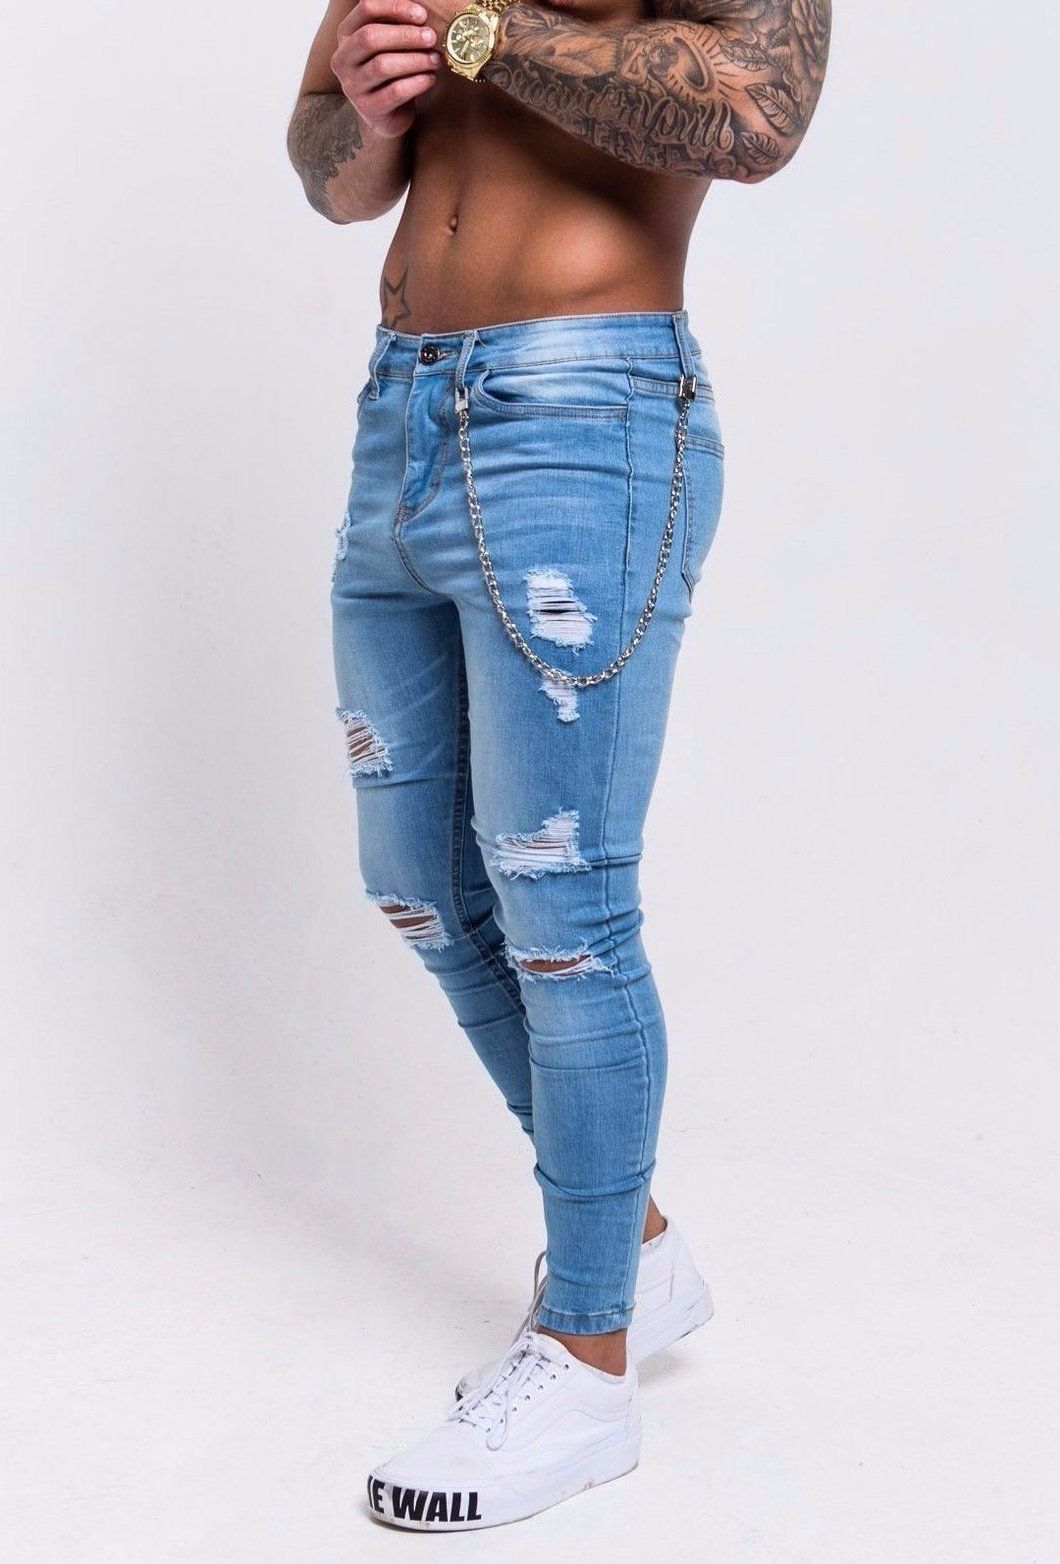 cb13a97bdf9 RIPPED AND REPAIRED SPRAY-ON SUPER SKINNY JEANS WITH CHAIN - LIGHT BLUE  Regular price £60.00 Men's ripped jeans, denim jeans #menspants #mensfashion